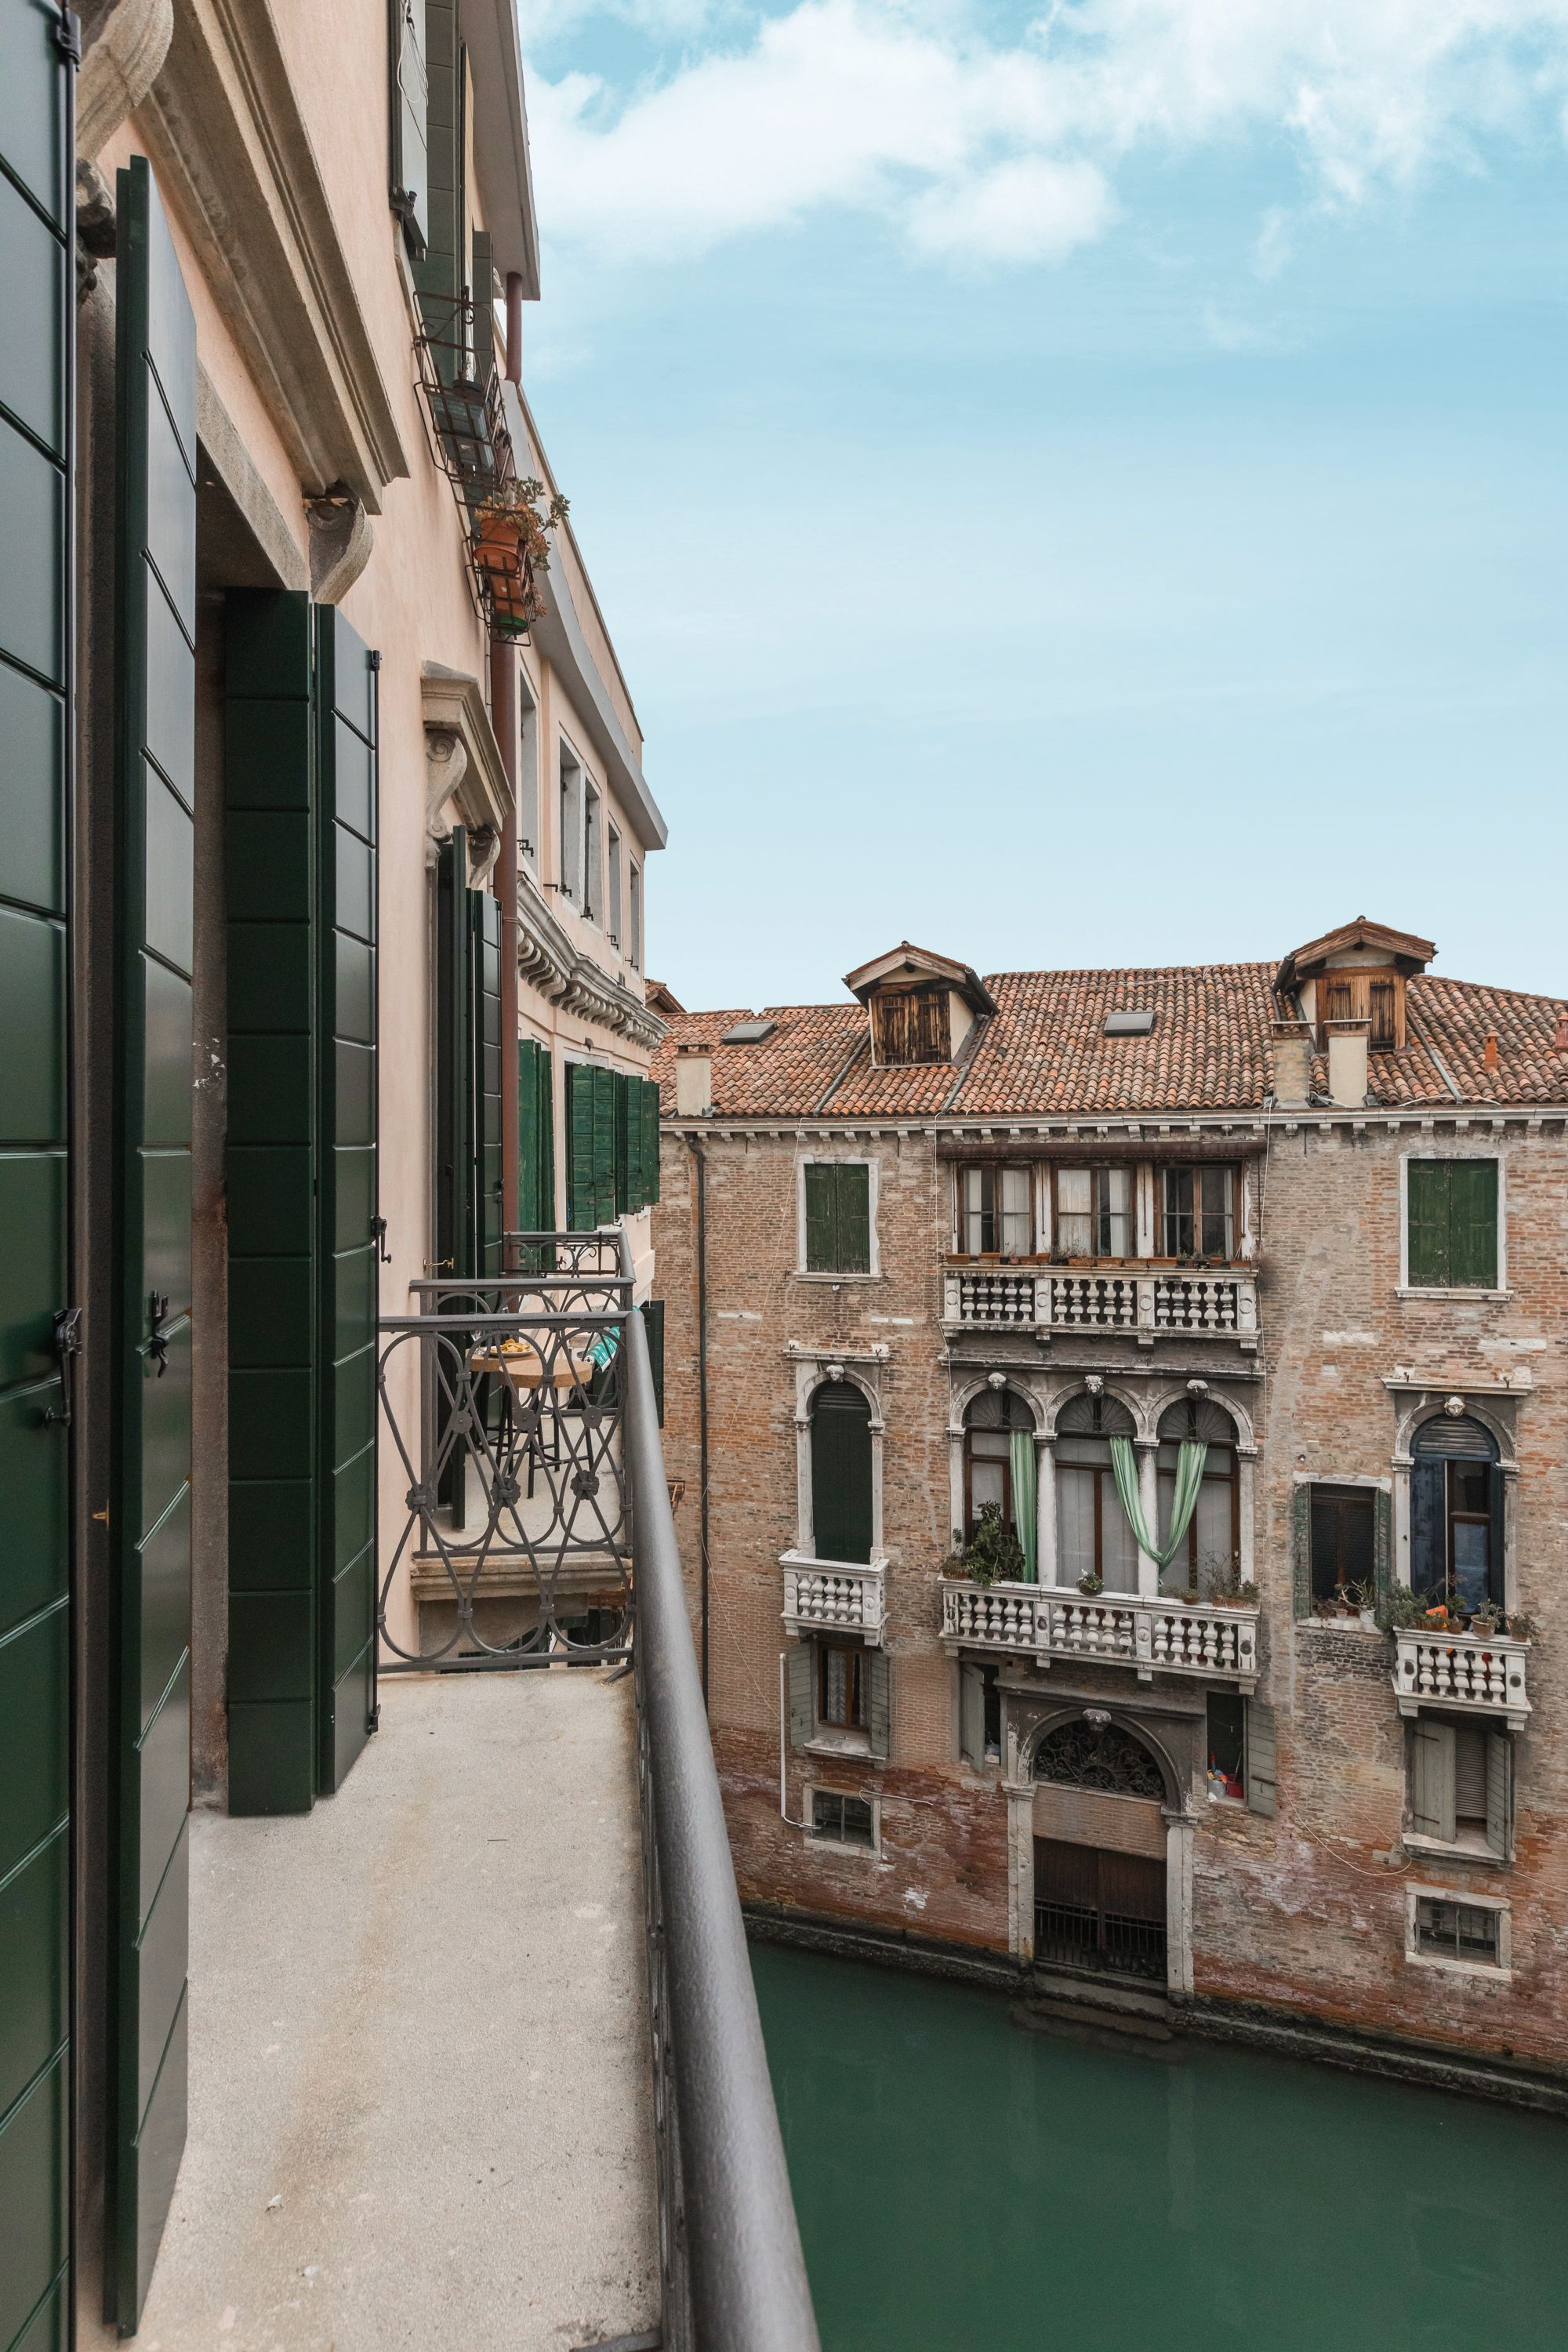 the panoramic canal view from the balconies is just breathtaking